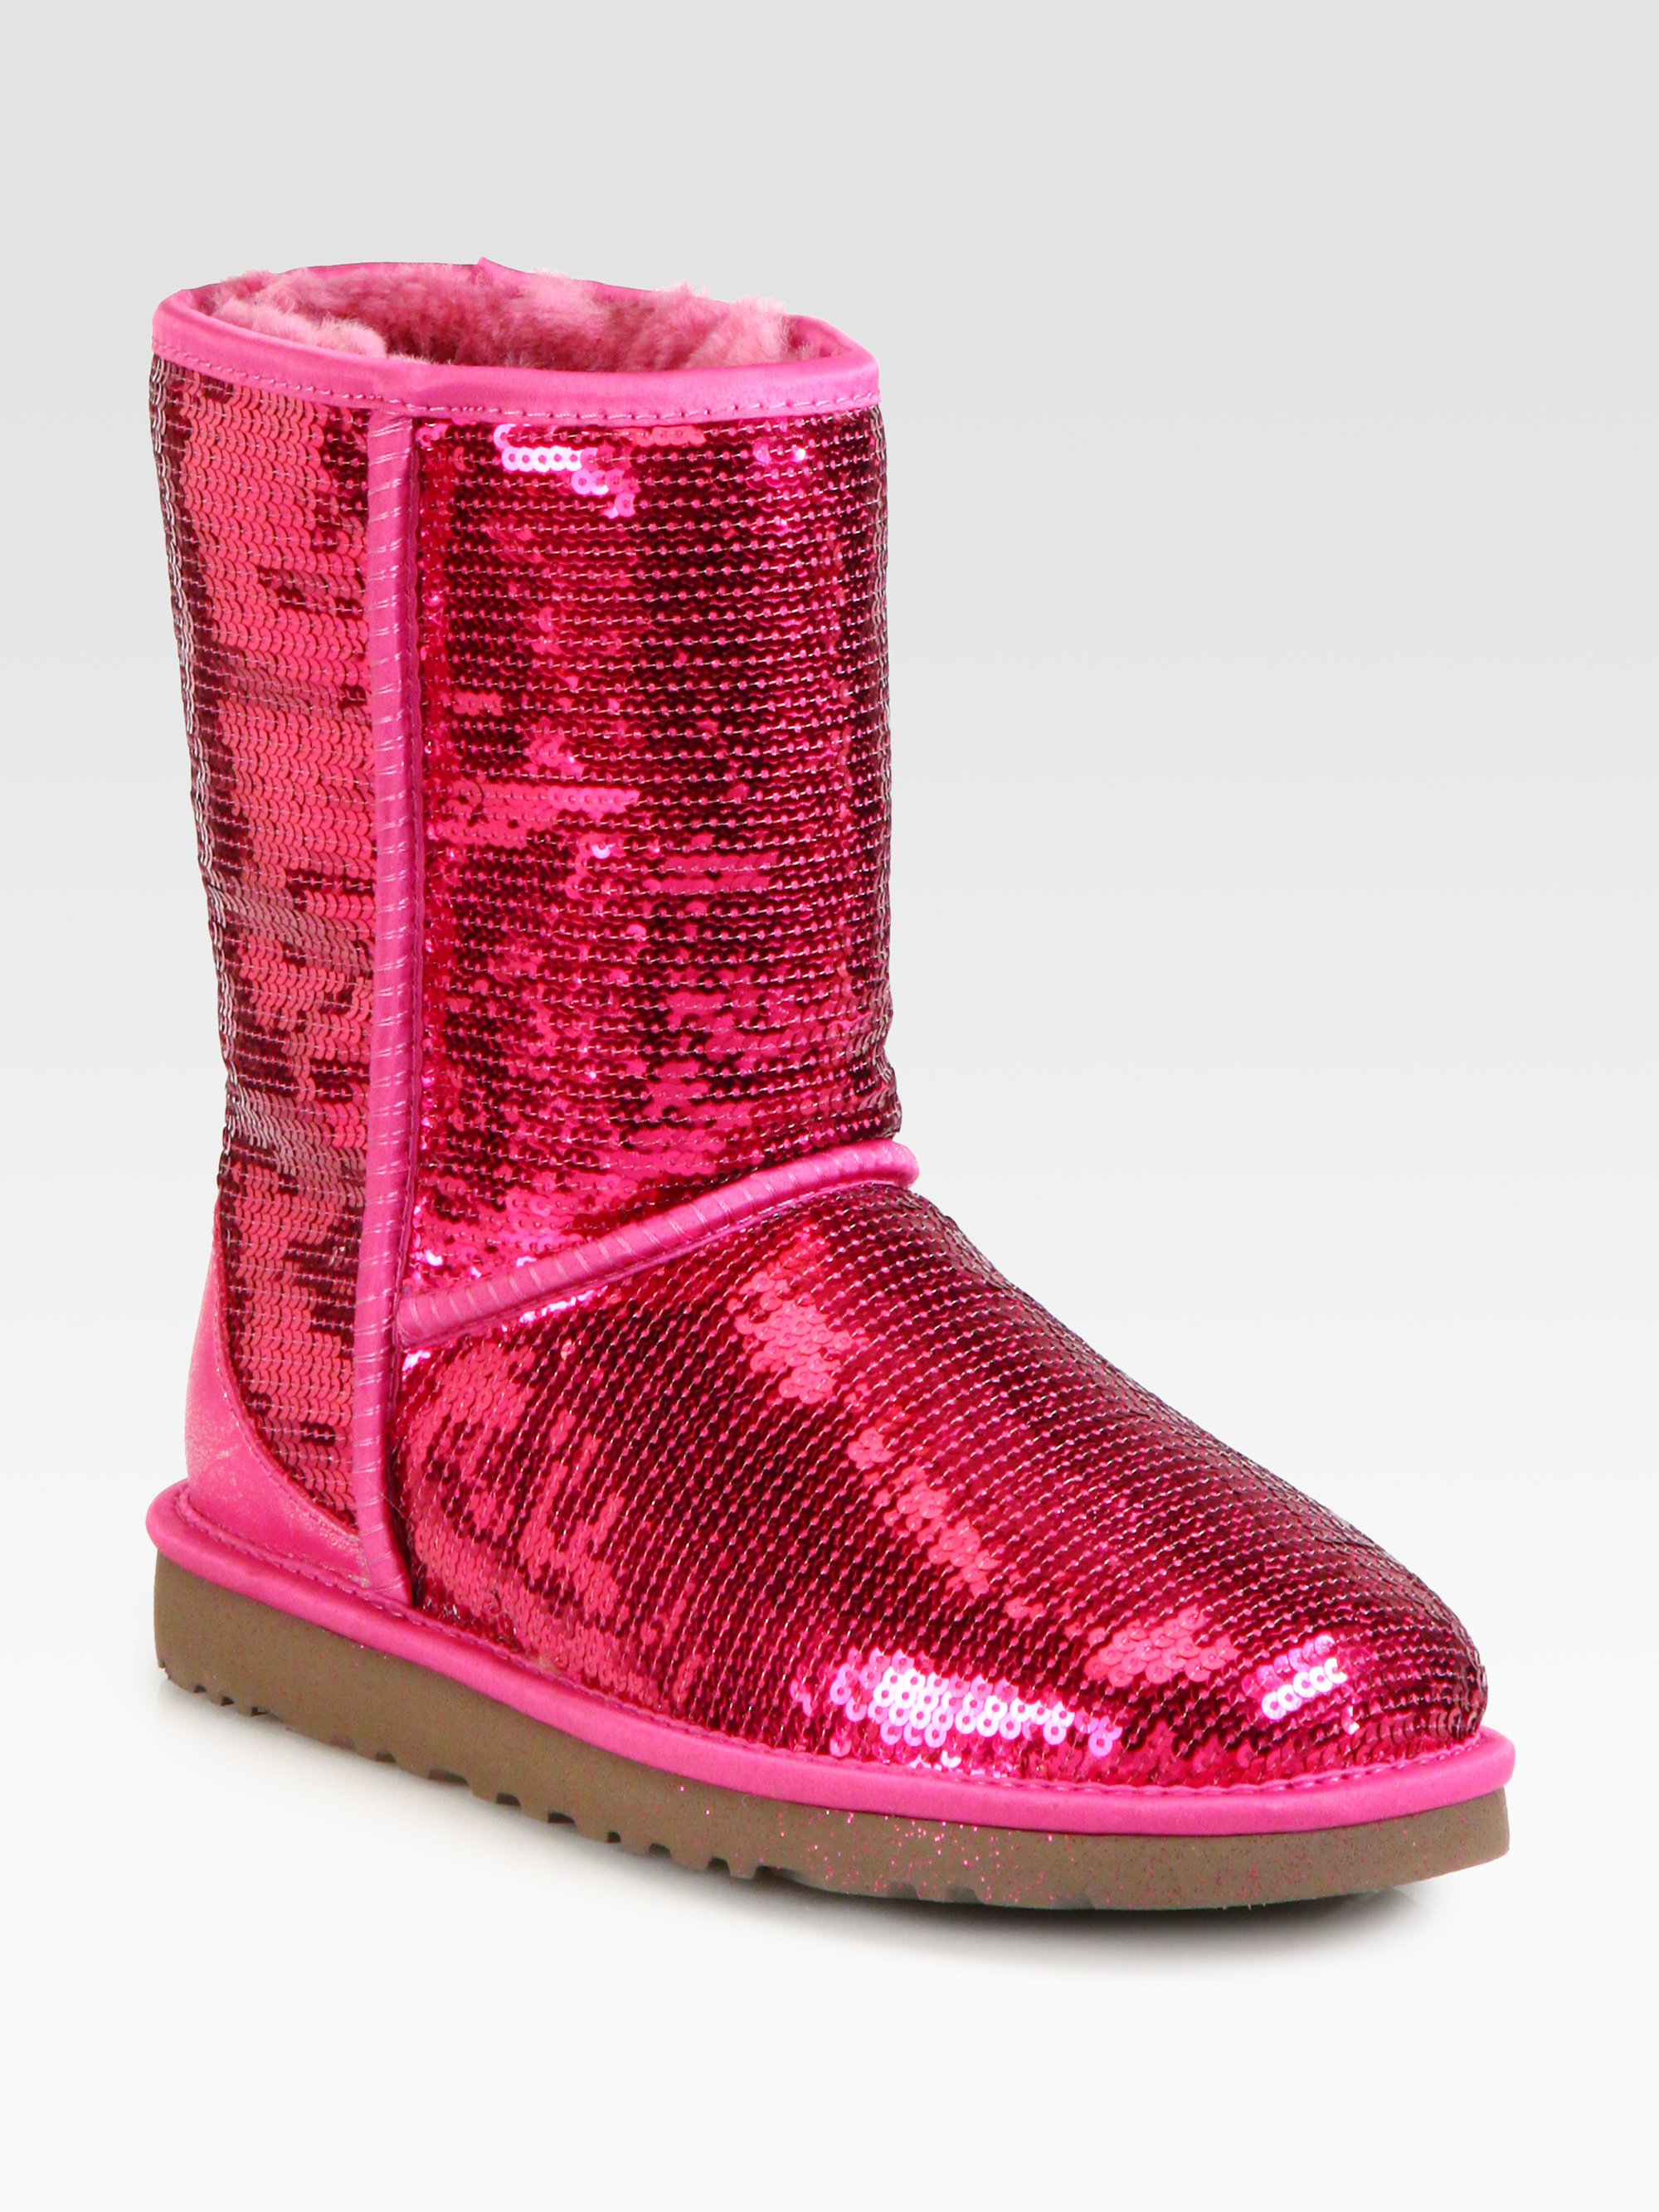 Lyst Ugg Classic Short Sequin Boots In Red